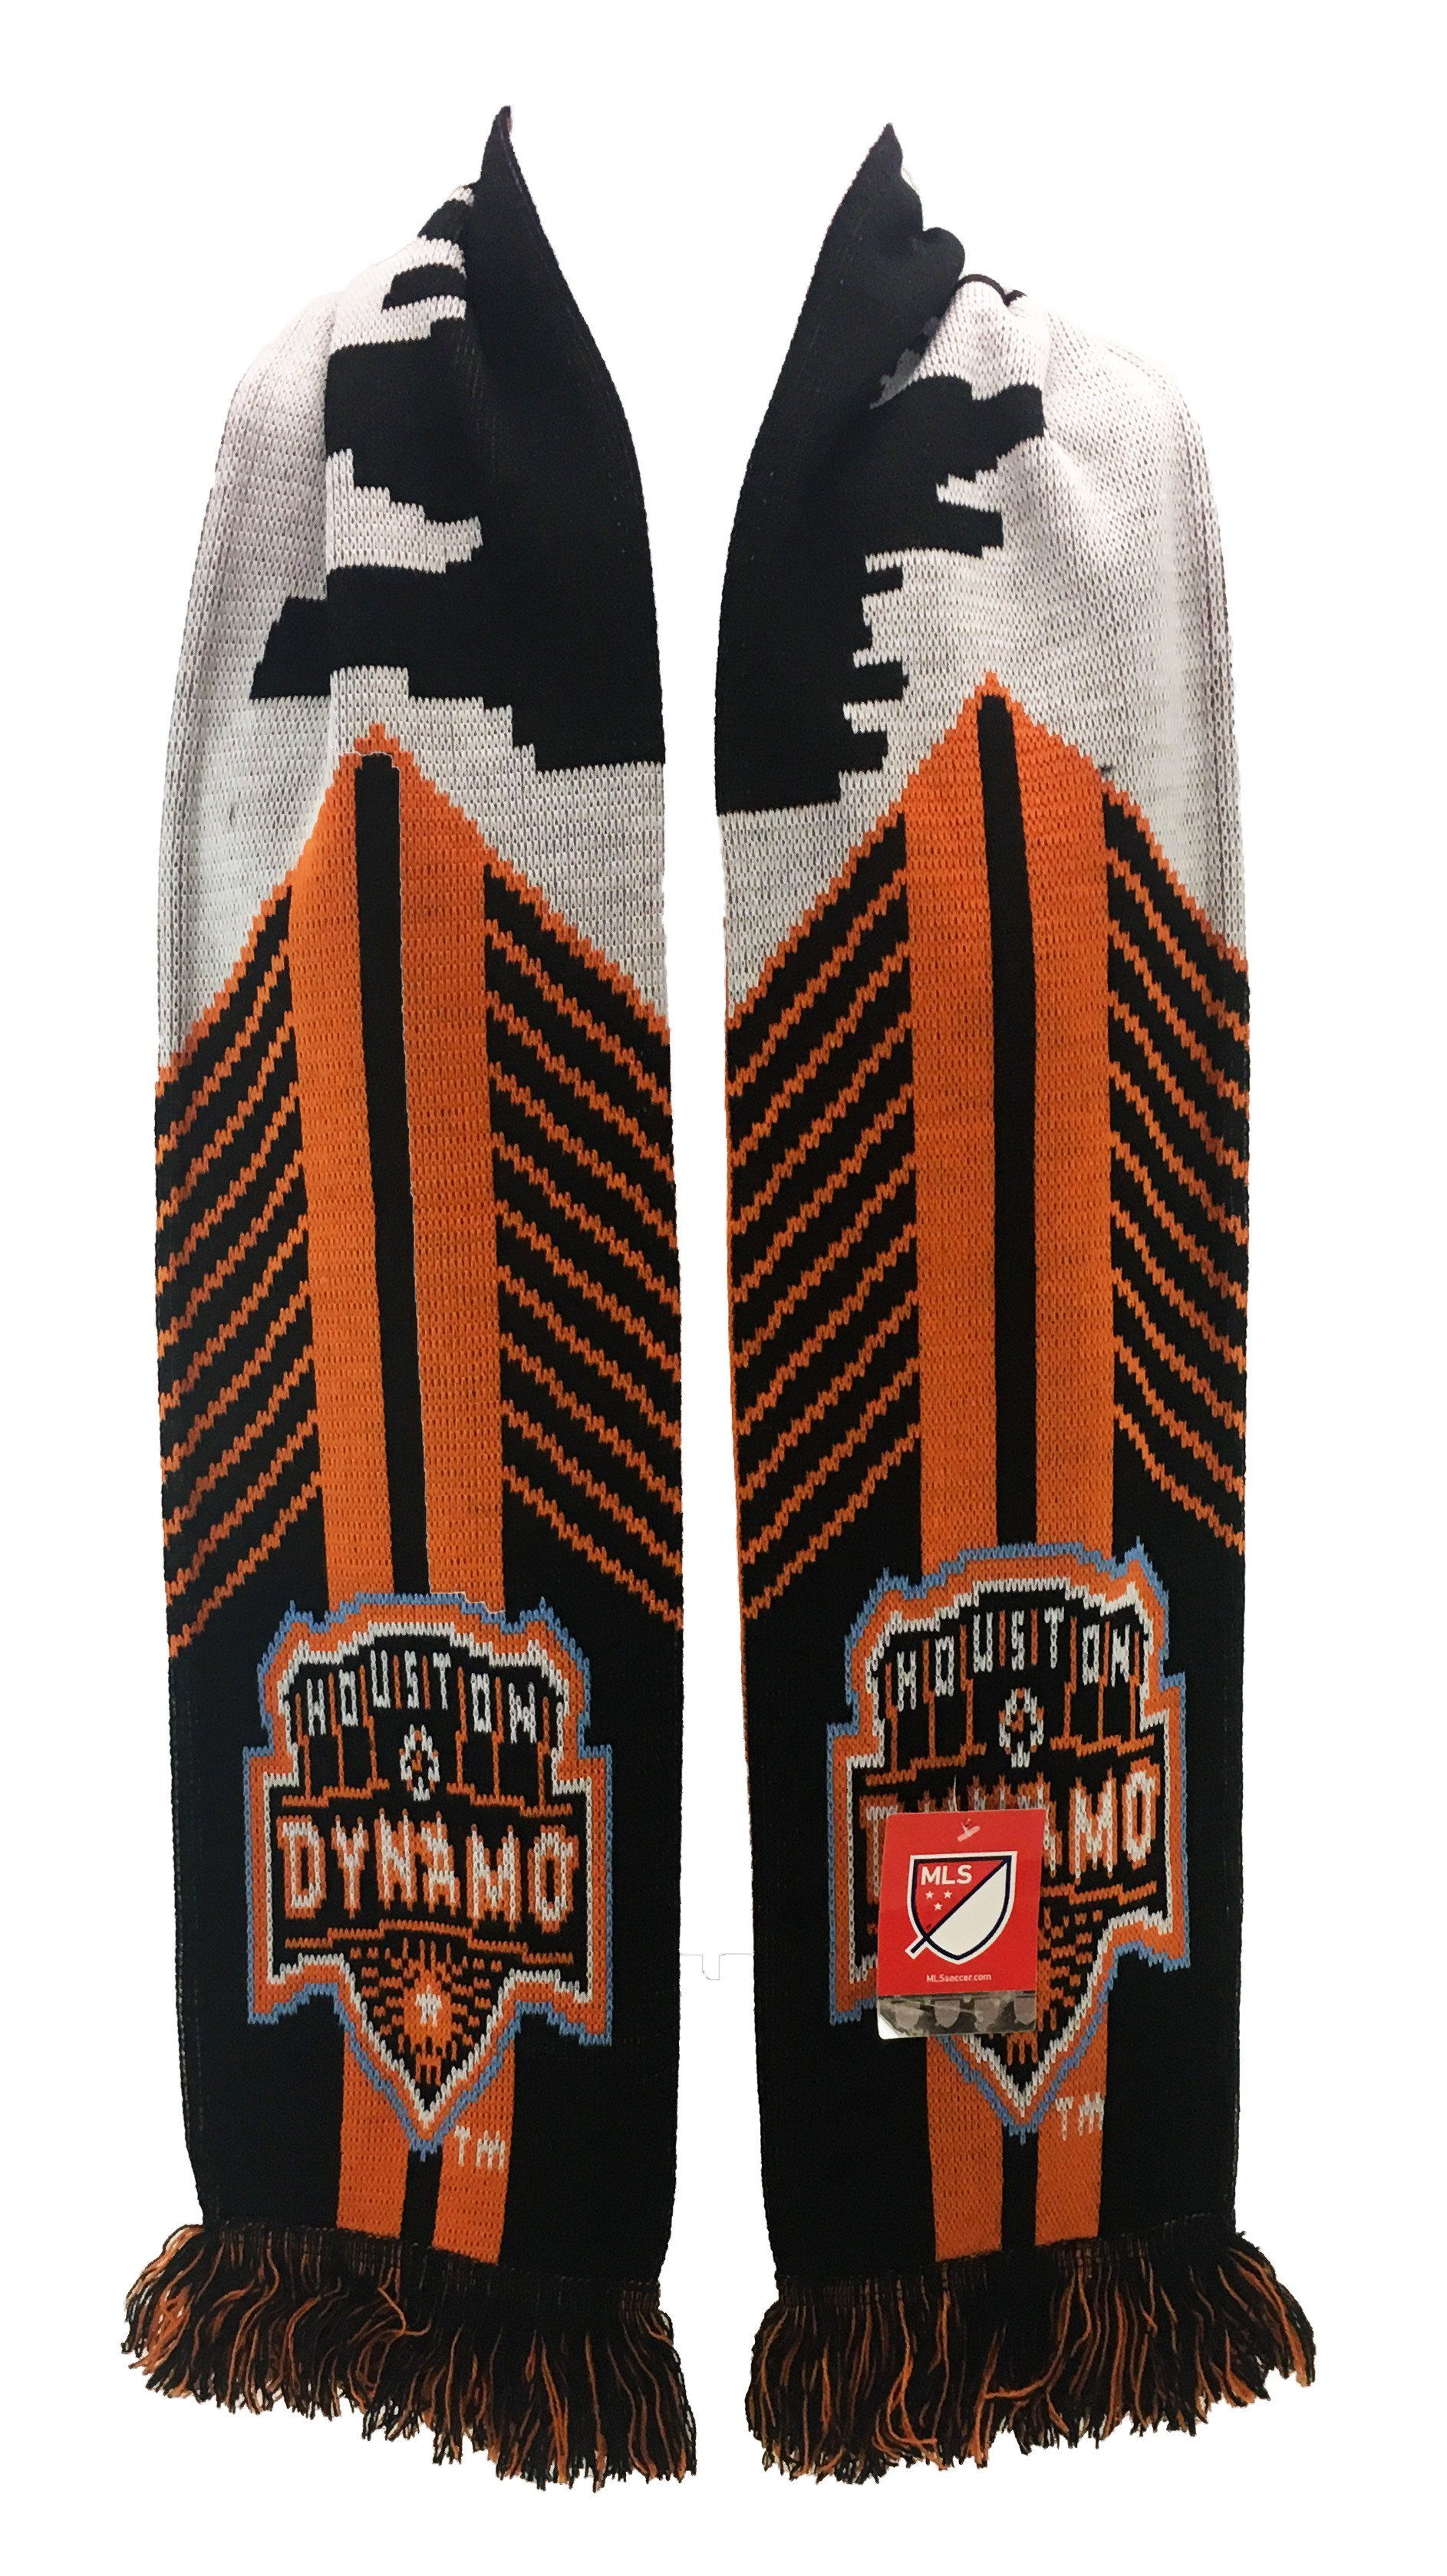 HOUSTON DYNAMO SCARF - Skyline